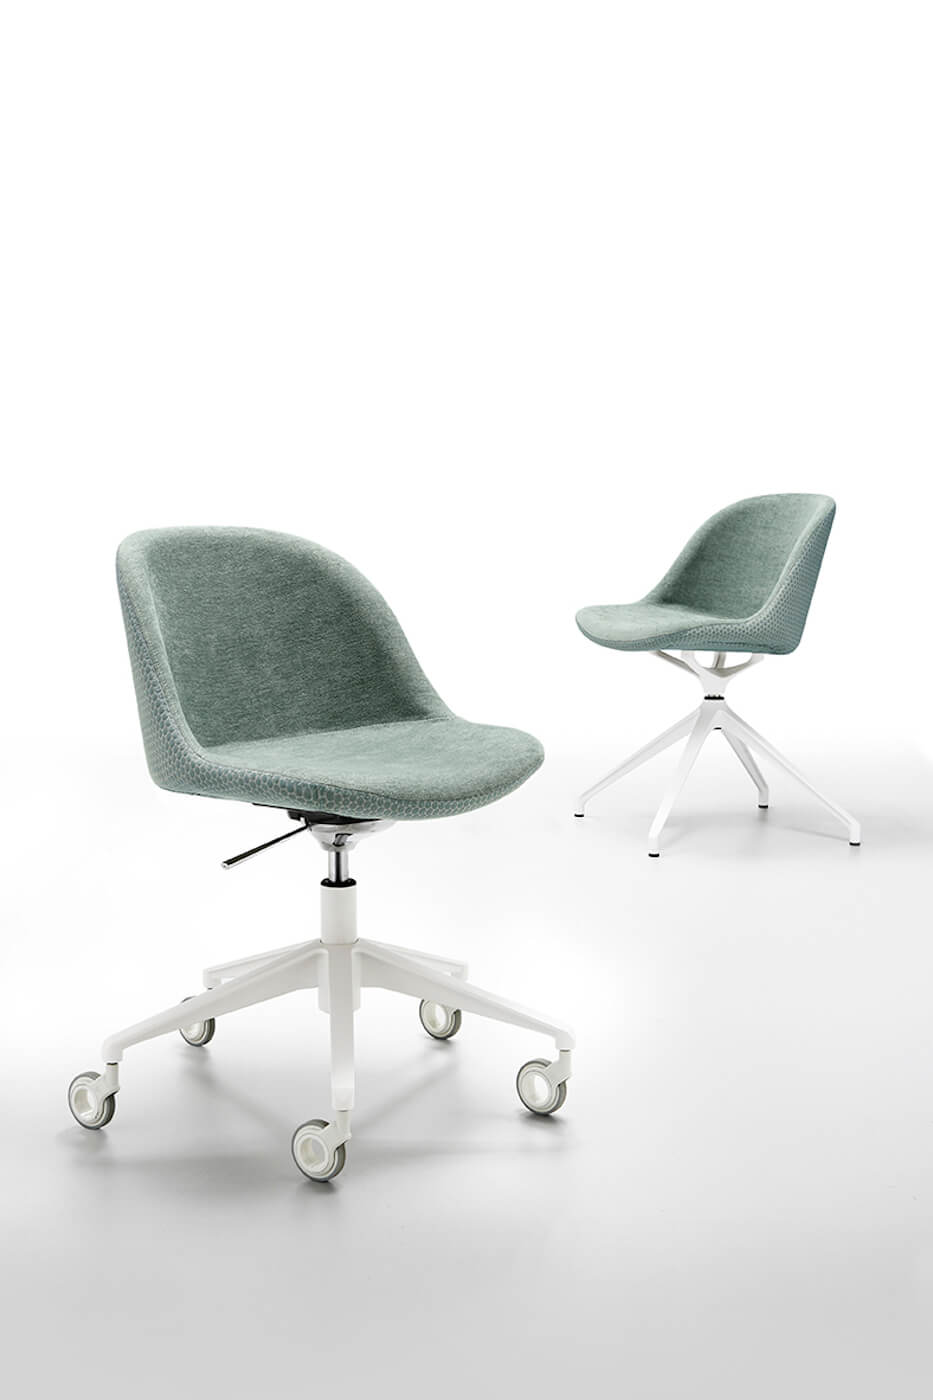 Sonny swivel chair with white metal frame and green fabric seat